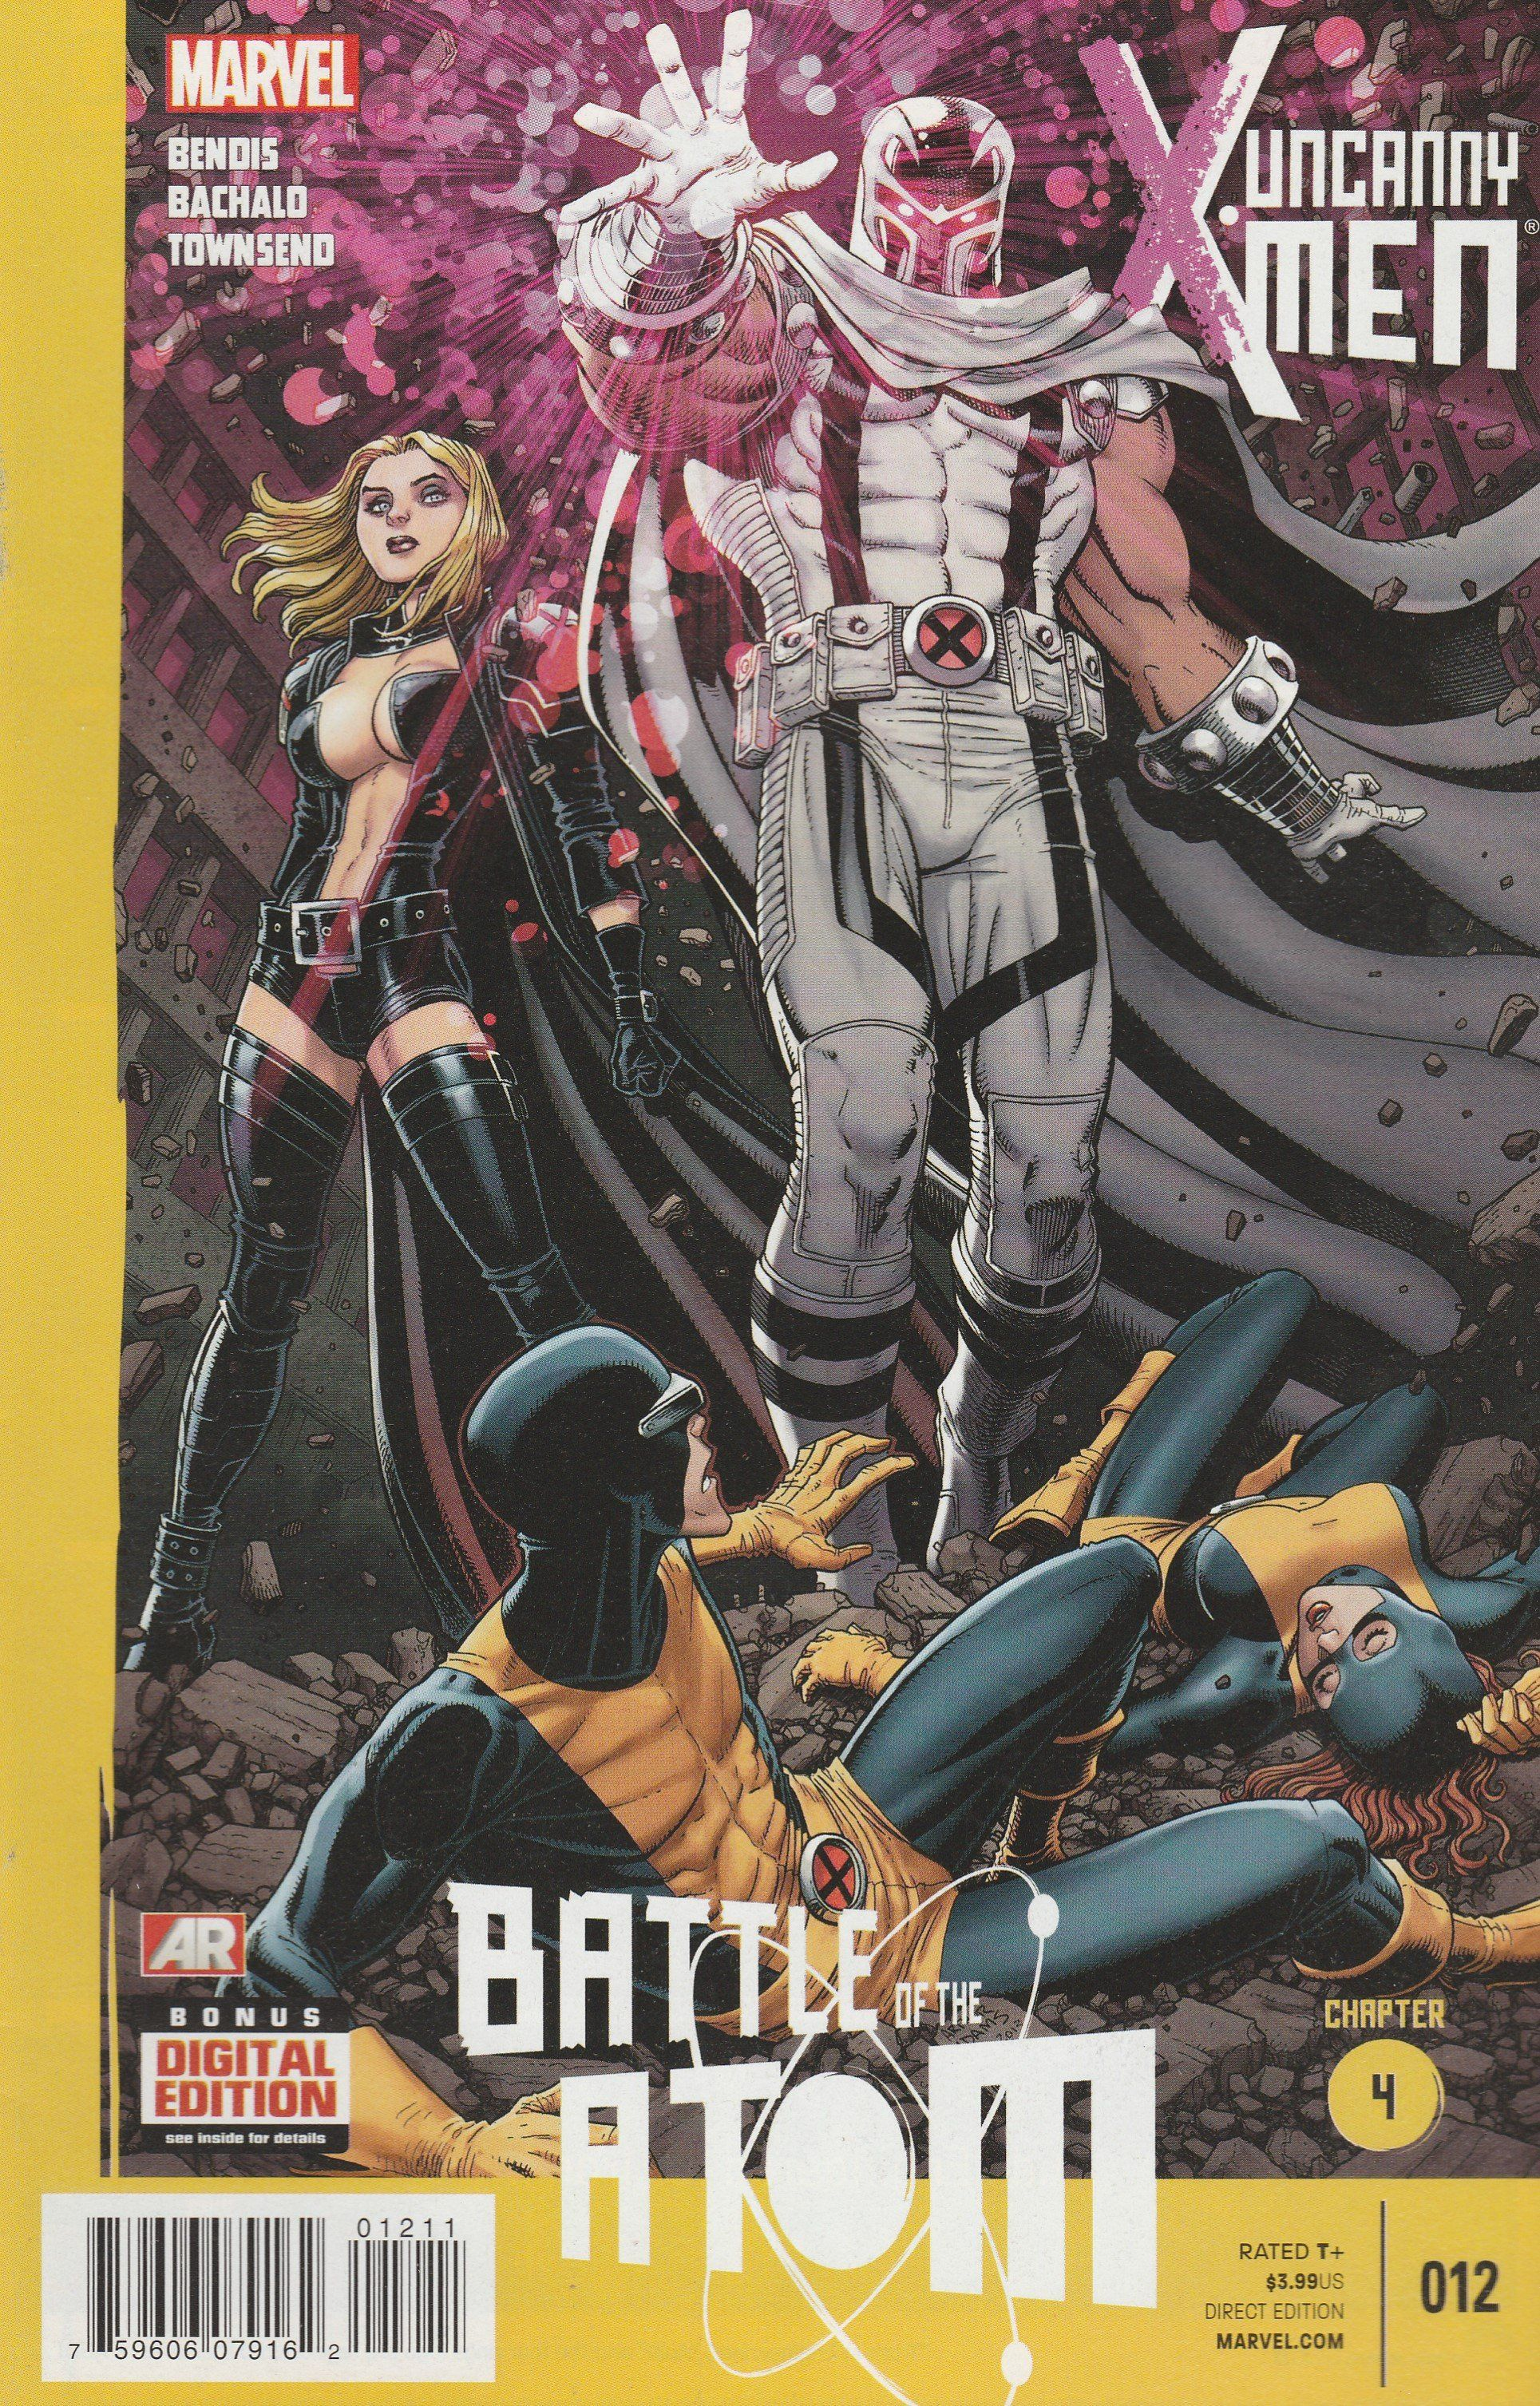 Battle Of The Atom Part 4 Brian Michael Bendis Writer Chris Bachalo Artist And Arthur Adams Cover Art The Uncanny X Men Enter X Men Atom Comics Comics